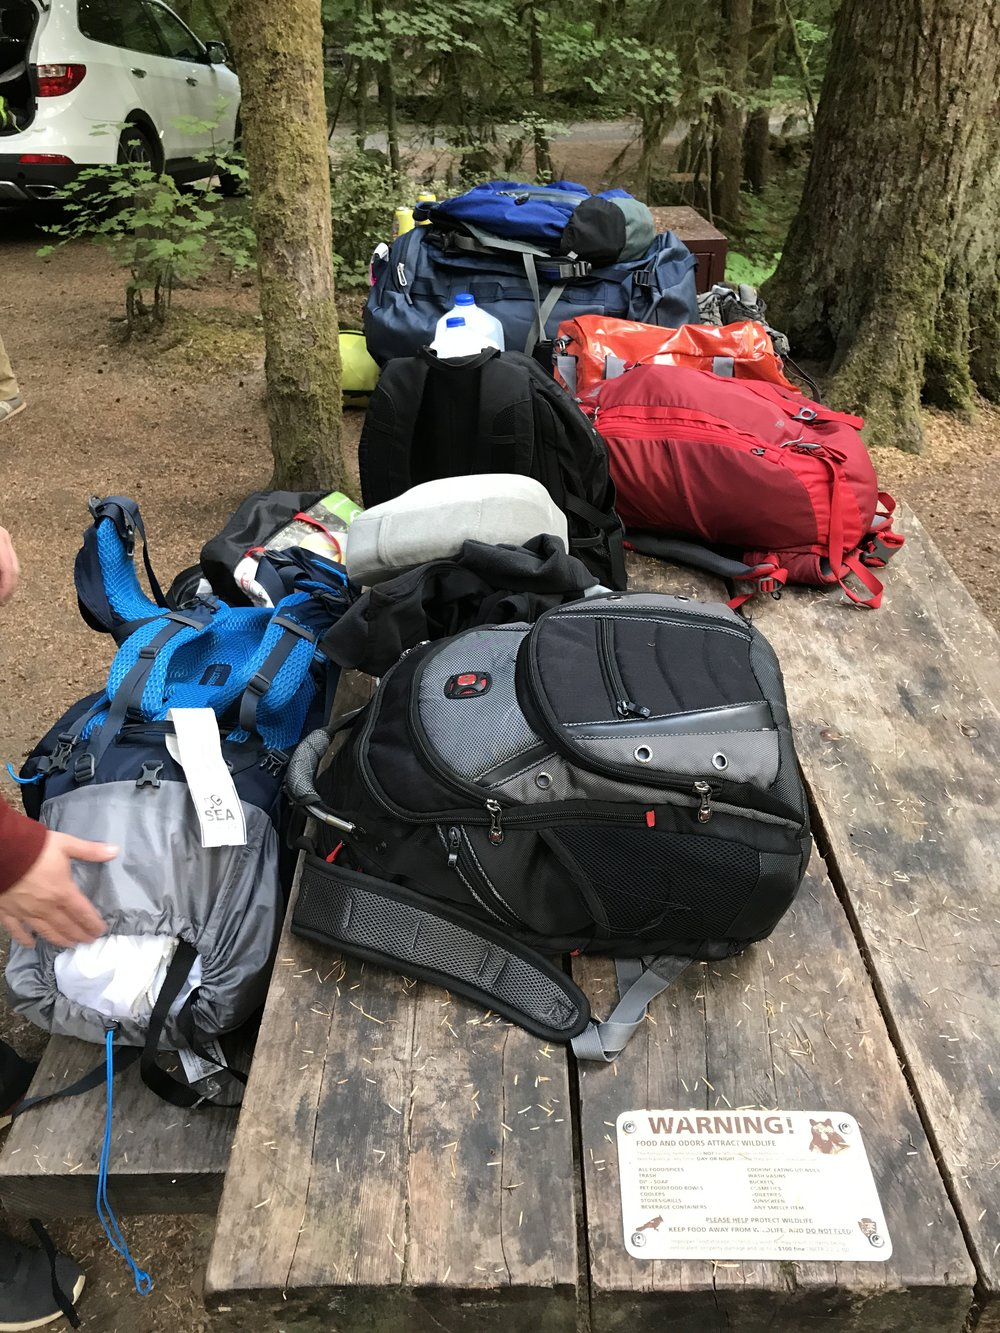 We camped overnight at the  Ohanapecosh Campground  inside of Rainier. Apparently the tent was buried in the back of the car and we had to unload and repack the gear for our next few tent camping evenings!